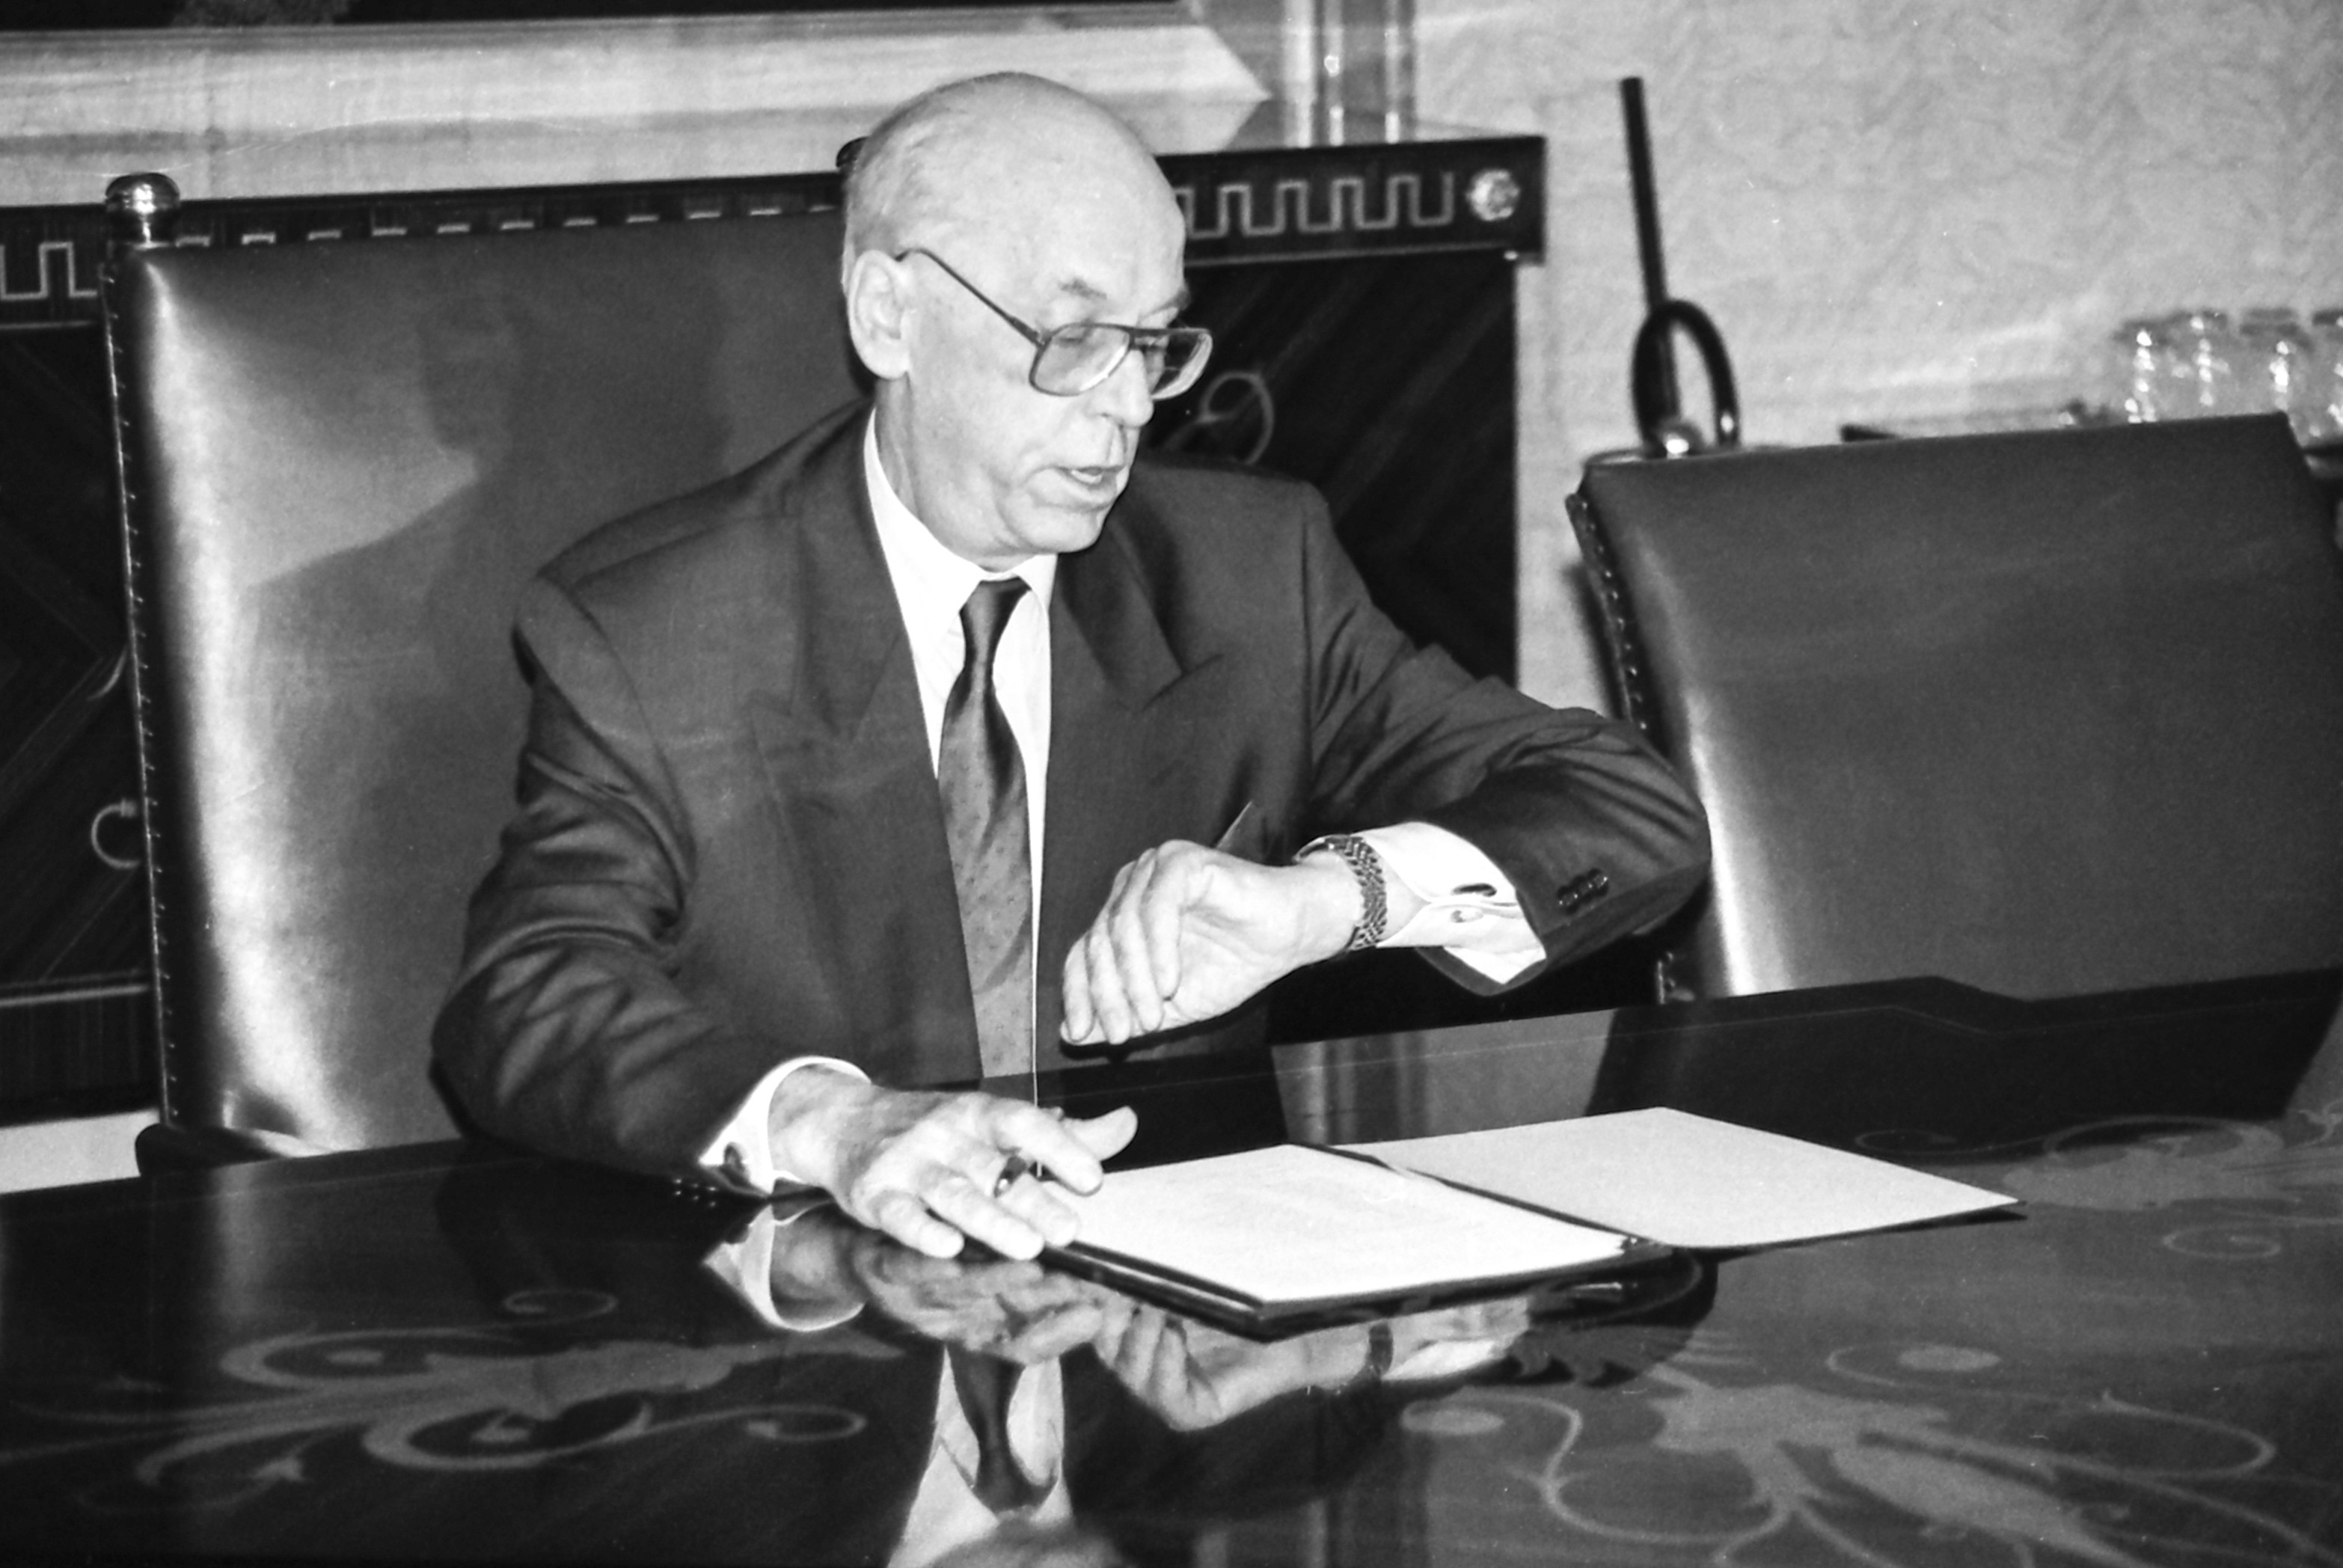 At 6:15 PM on 21 October 1992, President Lennart Meri issued Decree No. 1 from Kadriorg, appointing the first constitutional government of the Republic of Estonia after the restoration of national independence, with Mart Laar as prime minister. Photo by Peeter Langovits, from the archive of the foreign ministry.